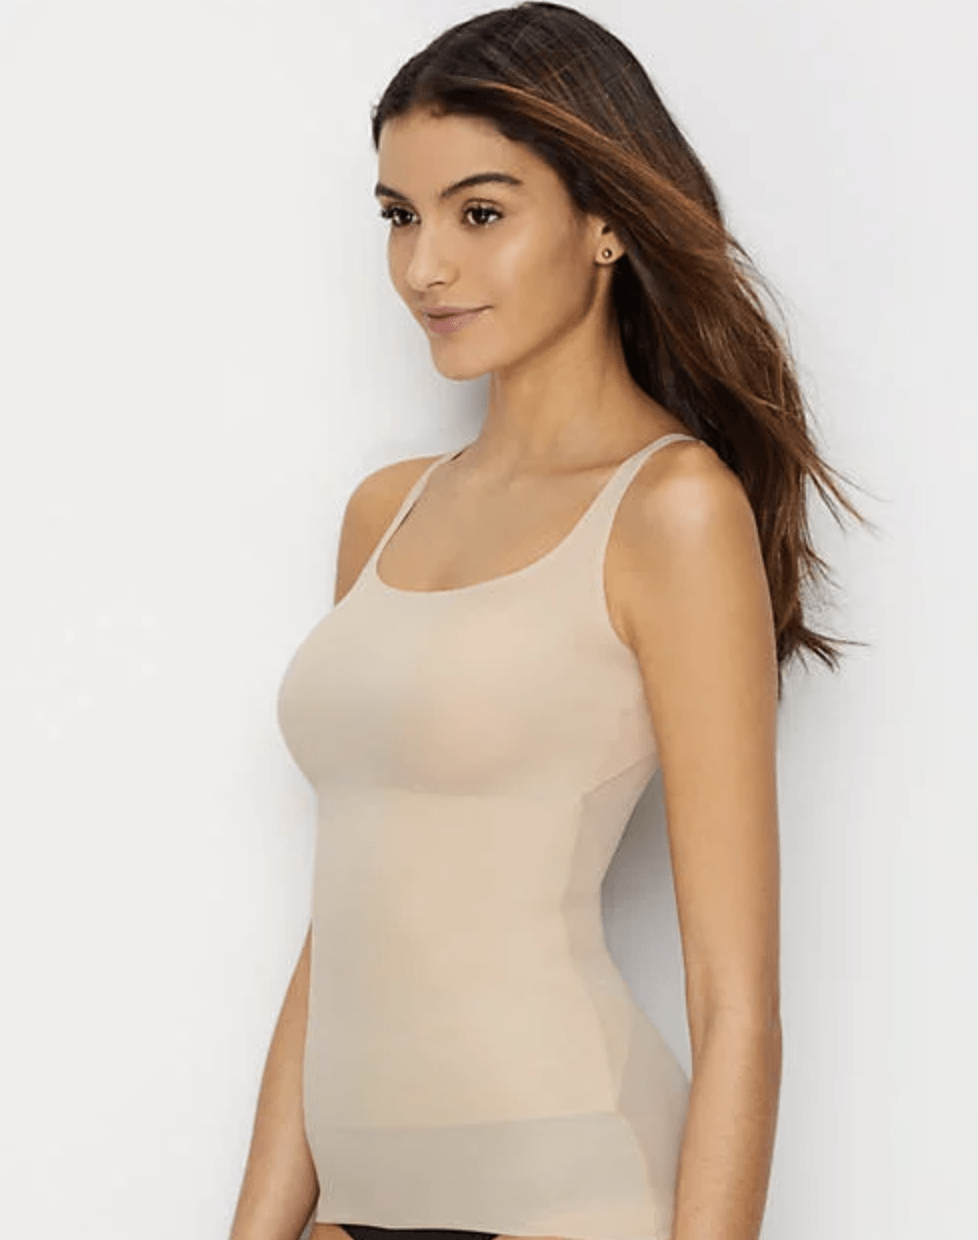 TC No Side-Show Camisole 4191 Shapewear TC